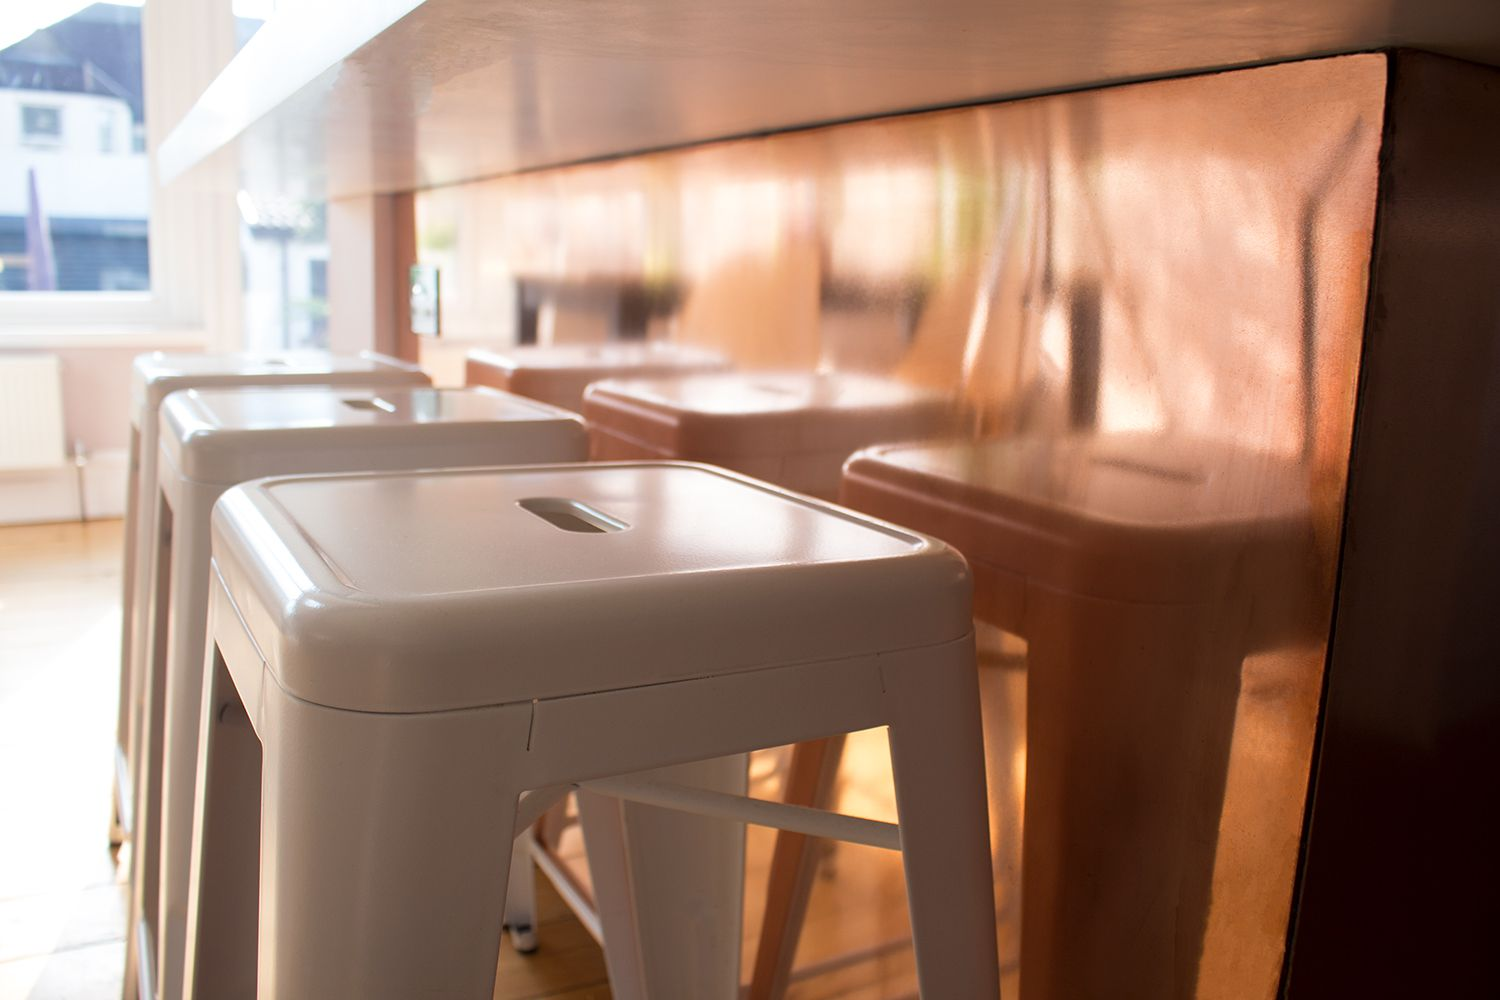 A close up of the new white bar stools against the copper on the back of the kitchen units.